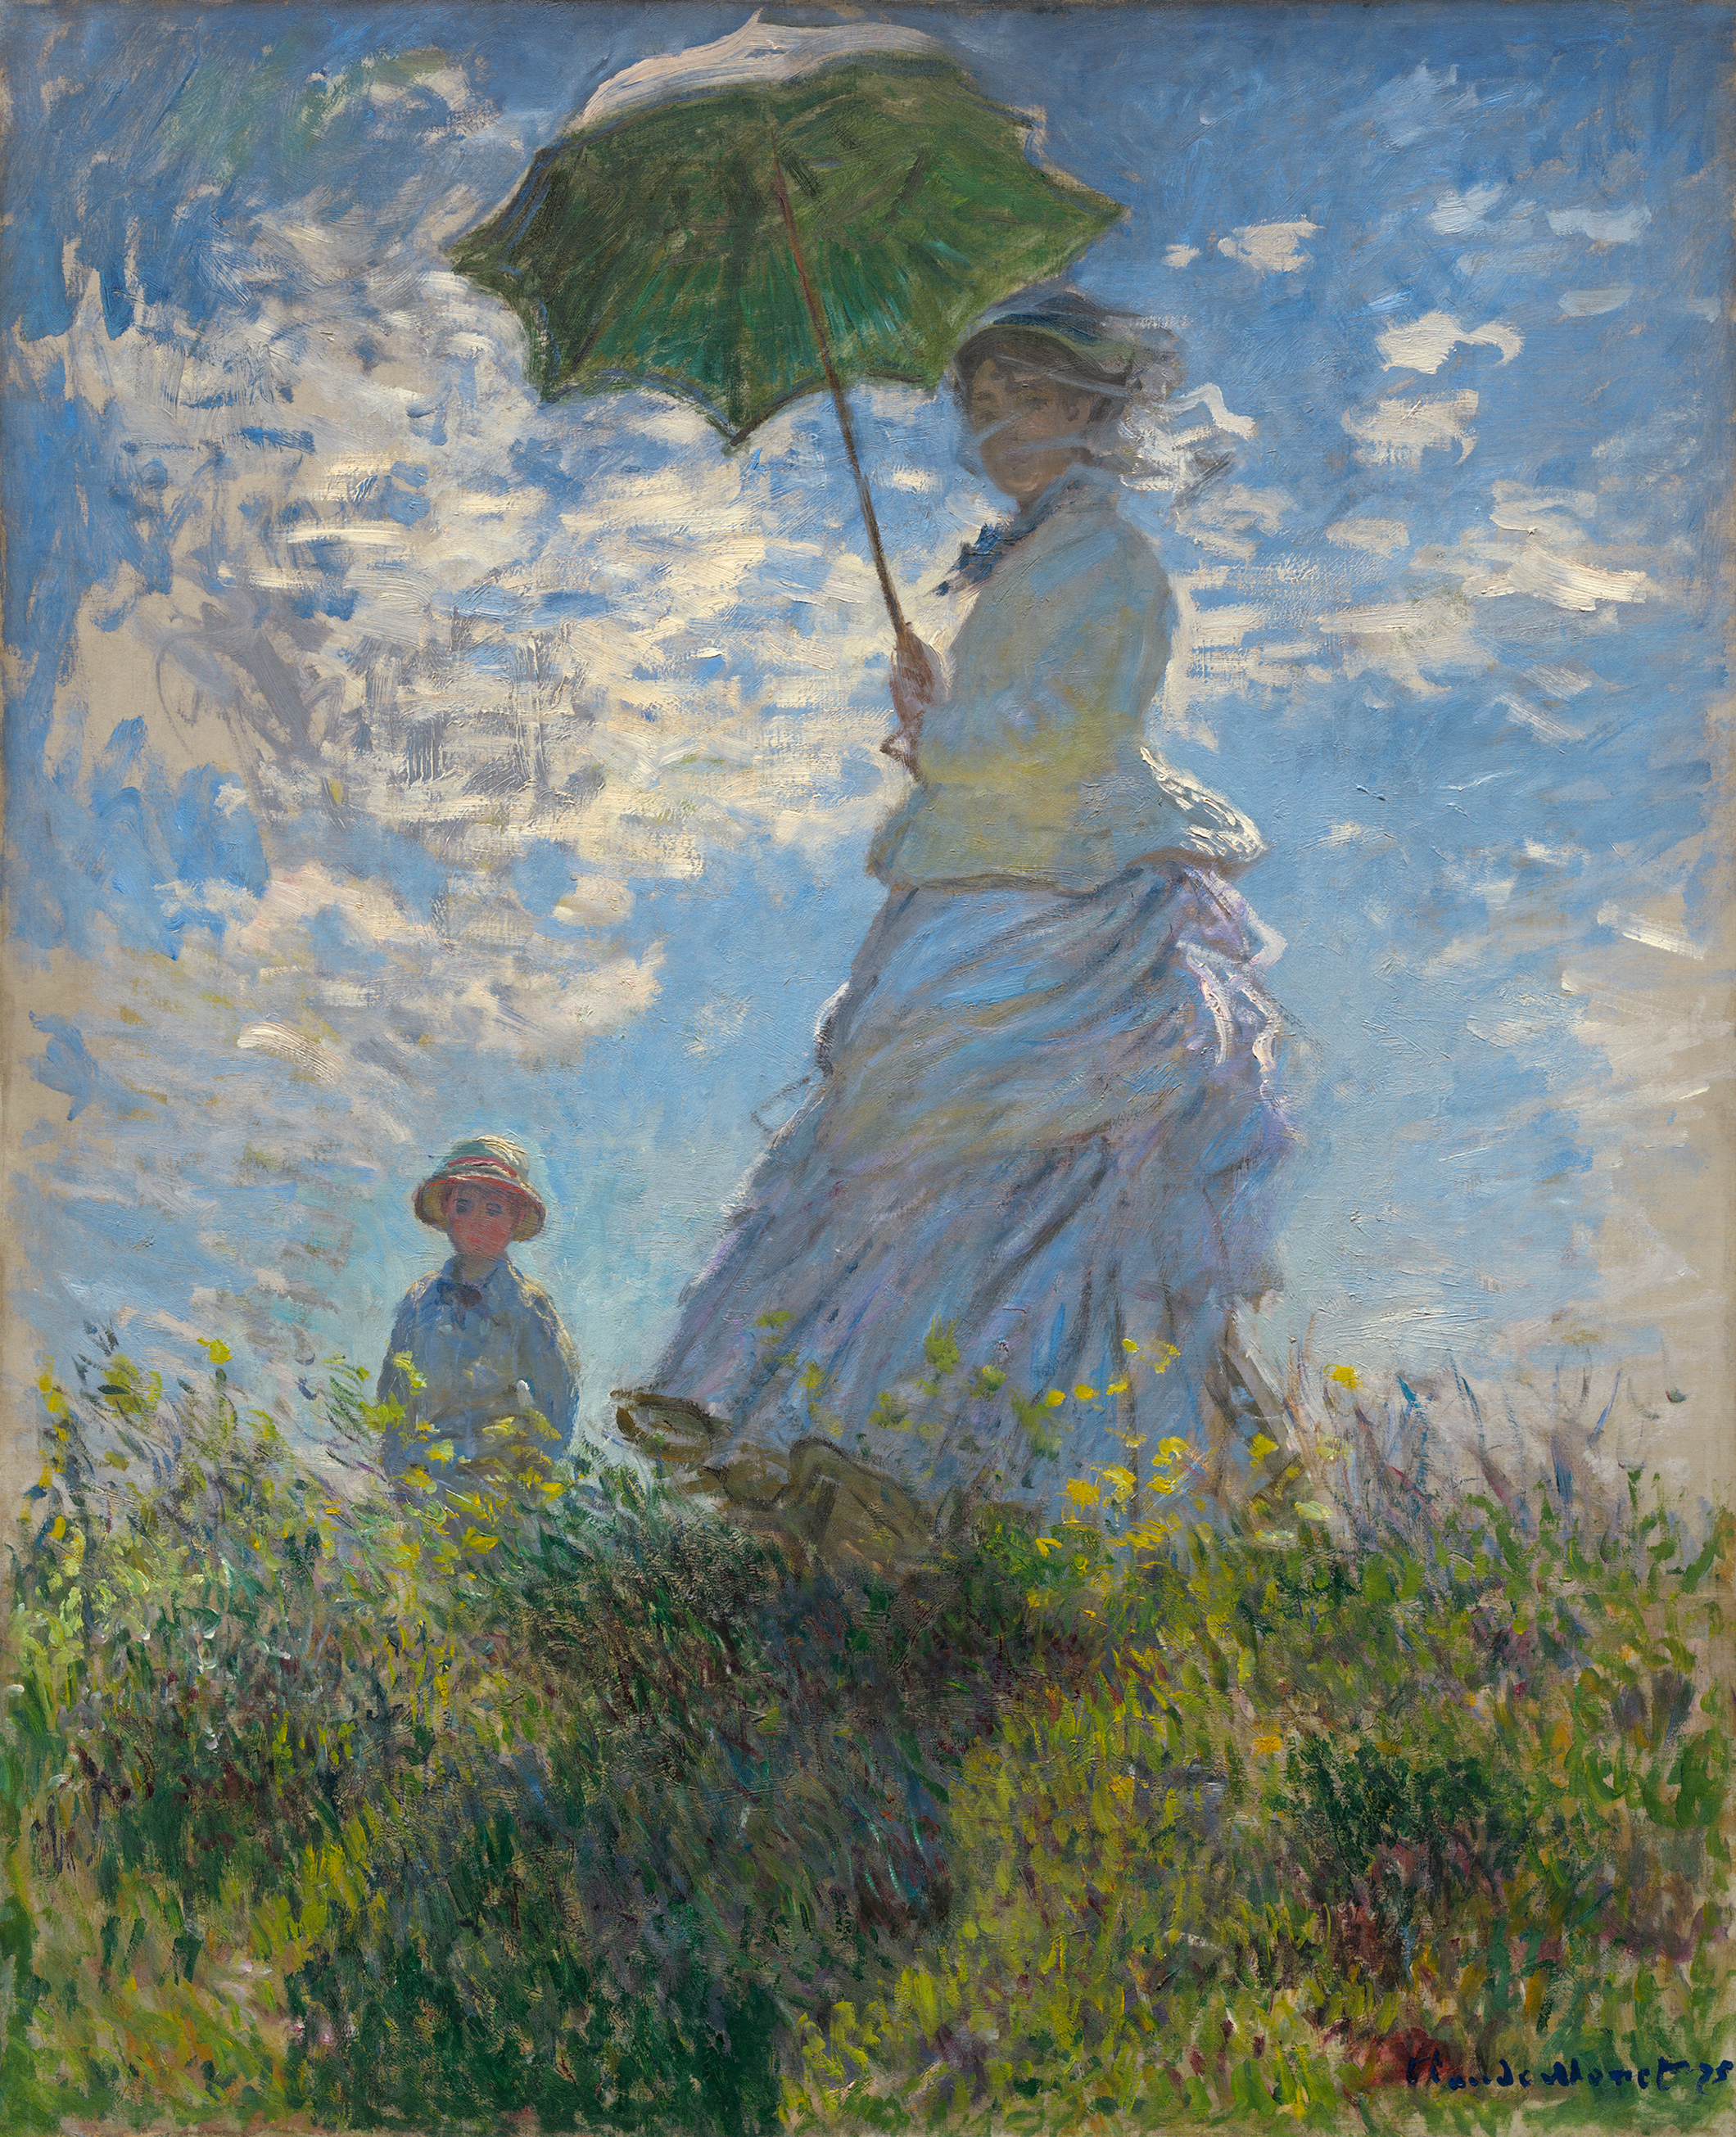 https://upload.wikimedia.org/wikipedia/commons/9/9a/Claude_Monet_011.jpg